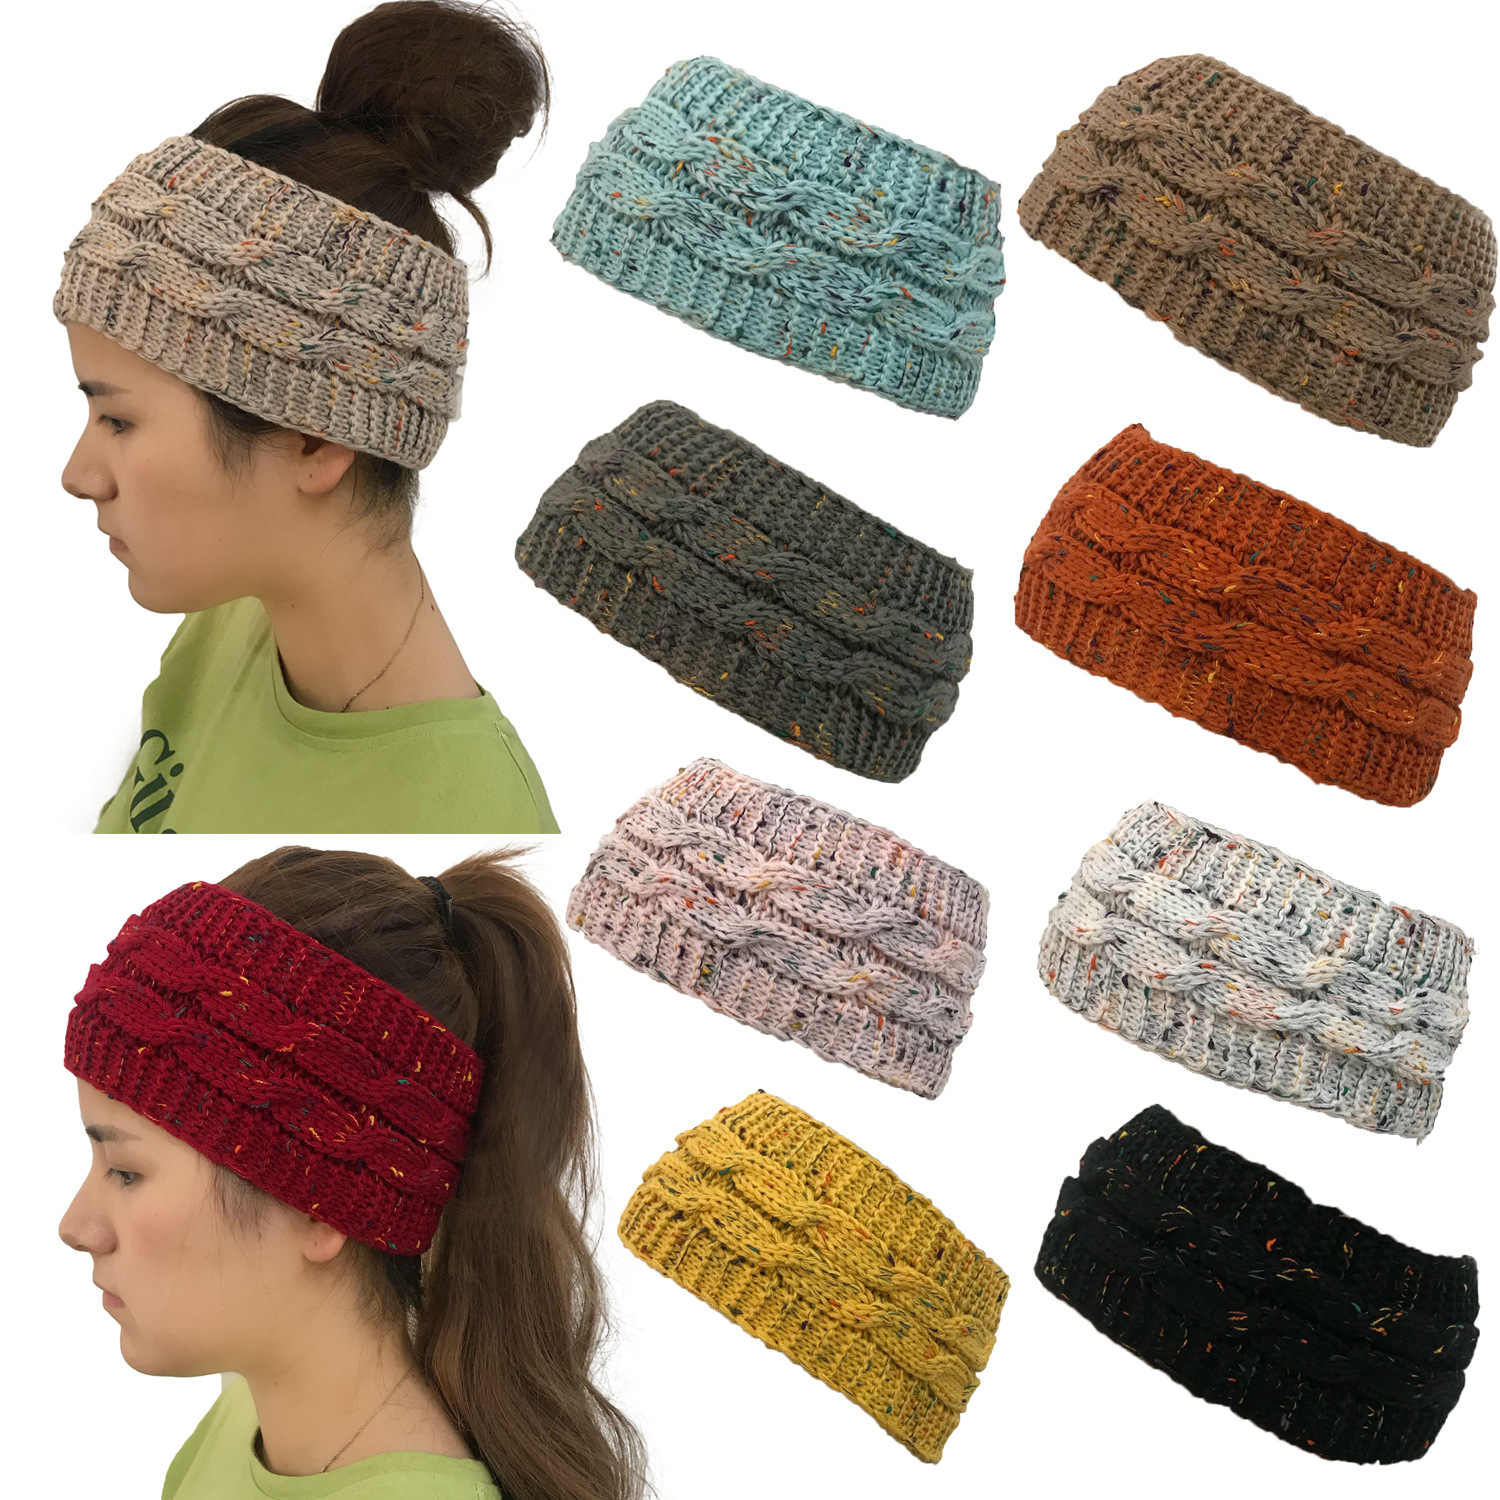 59b01c74 Ponytail Beanies Women Warm Winter Hat For Women Beanie Knitted Head Wear  Bun Hats Girl Skull Cap Bonnet Headwear czapki zimowe